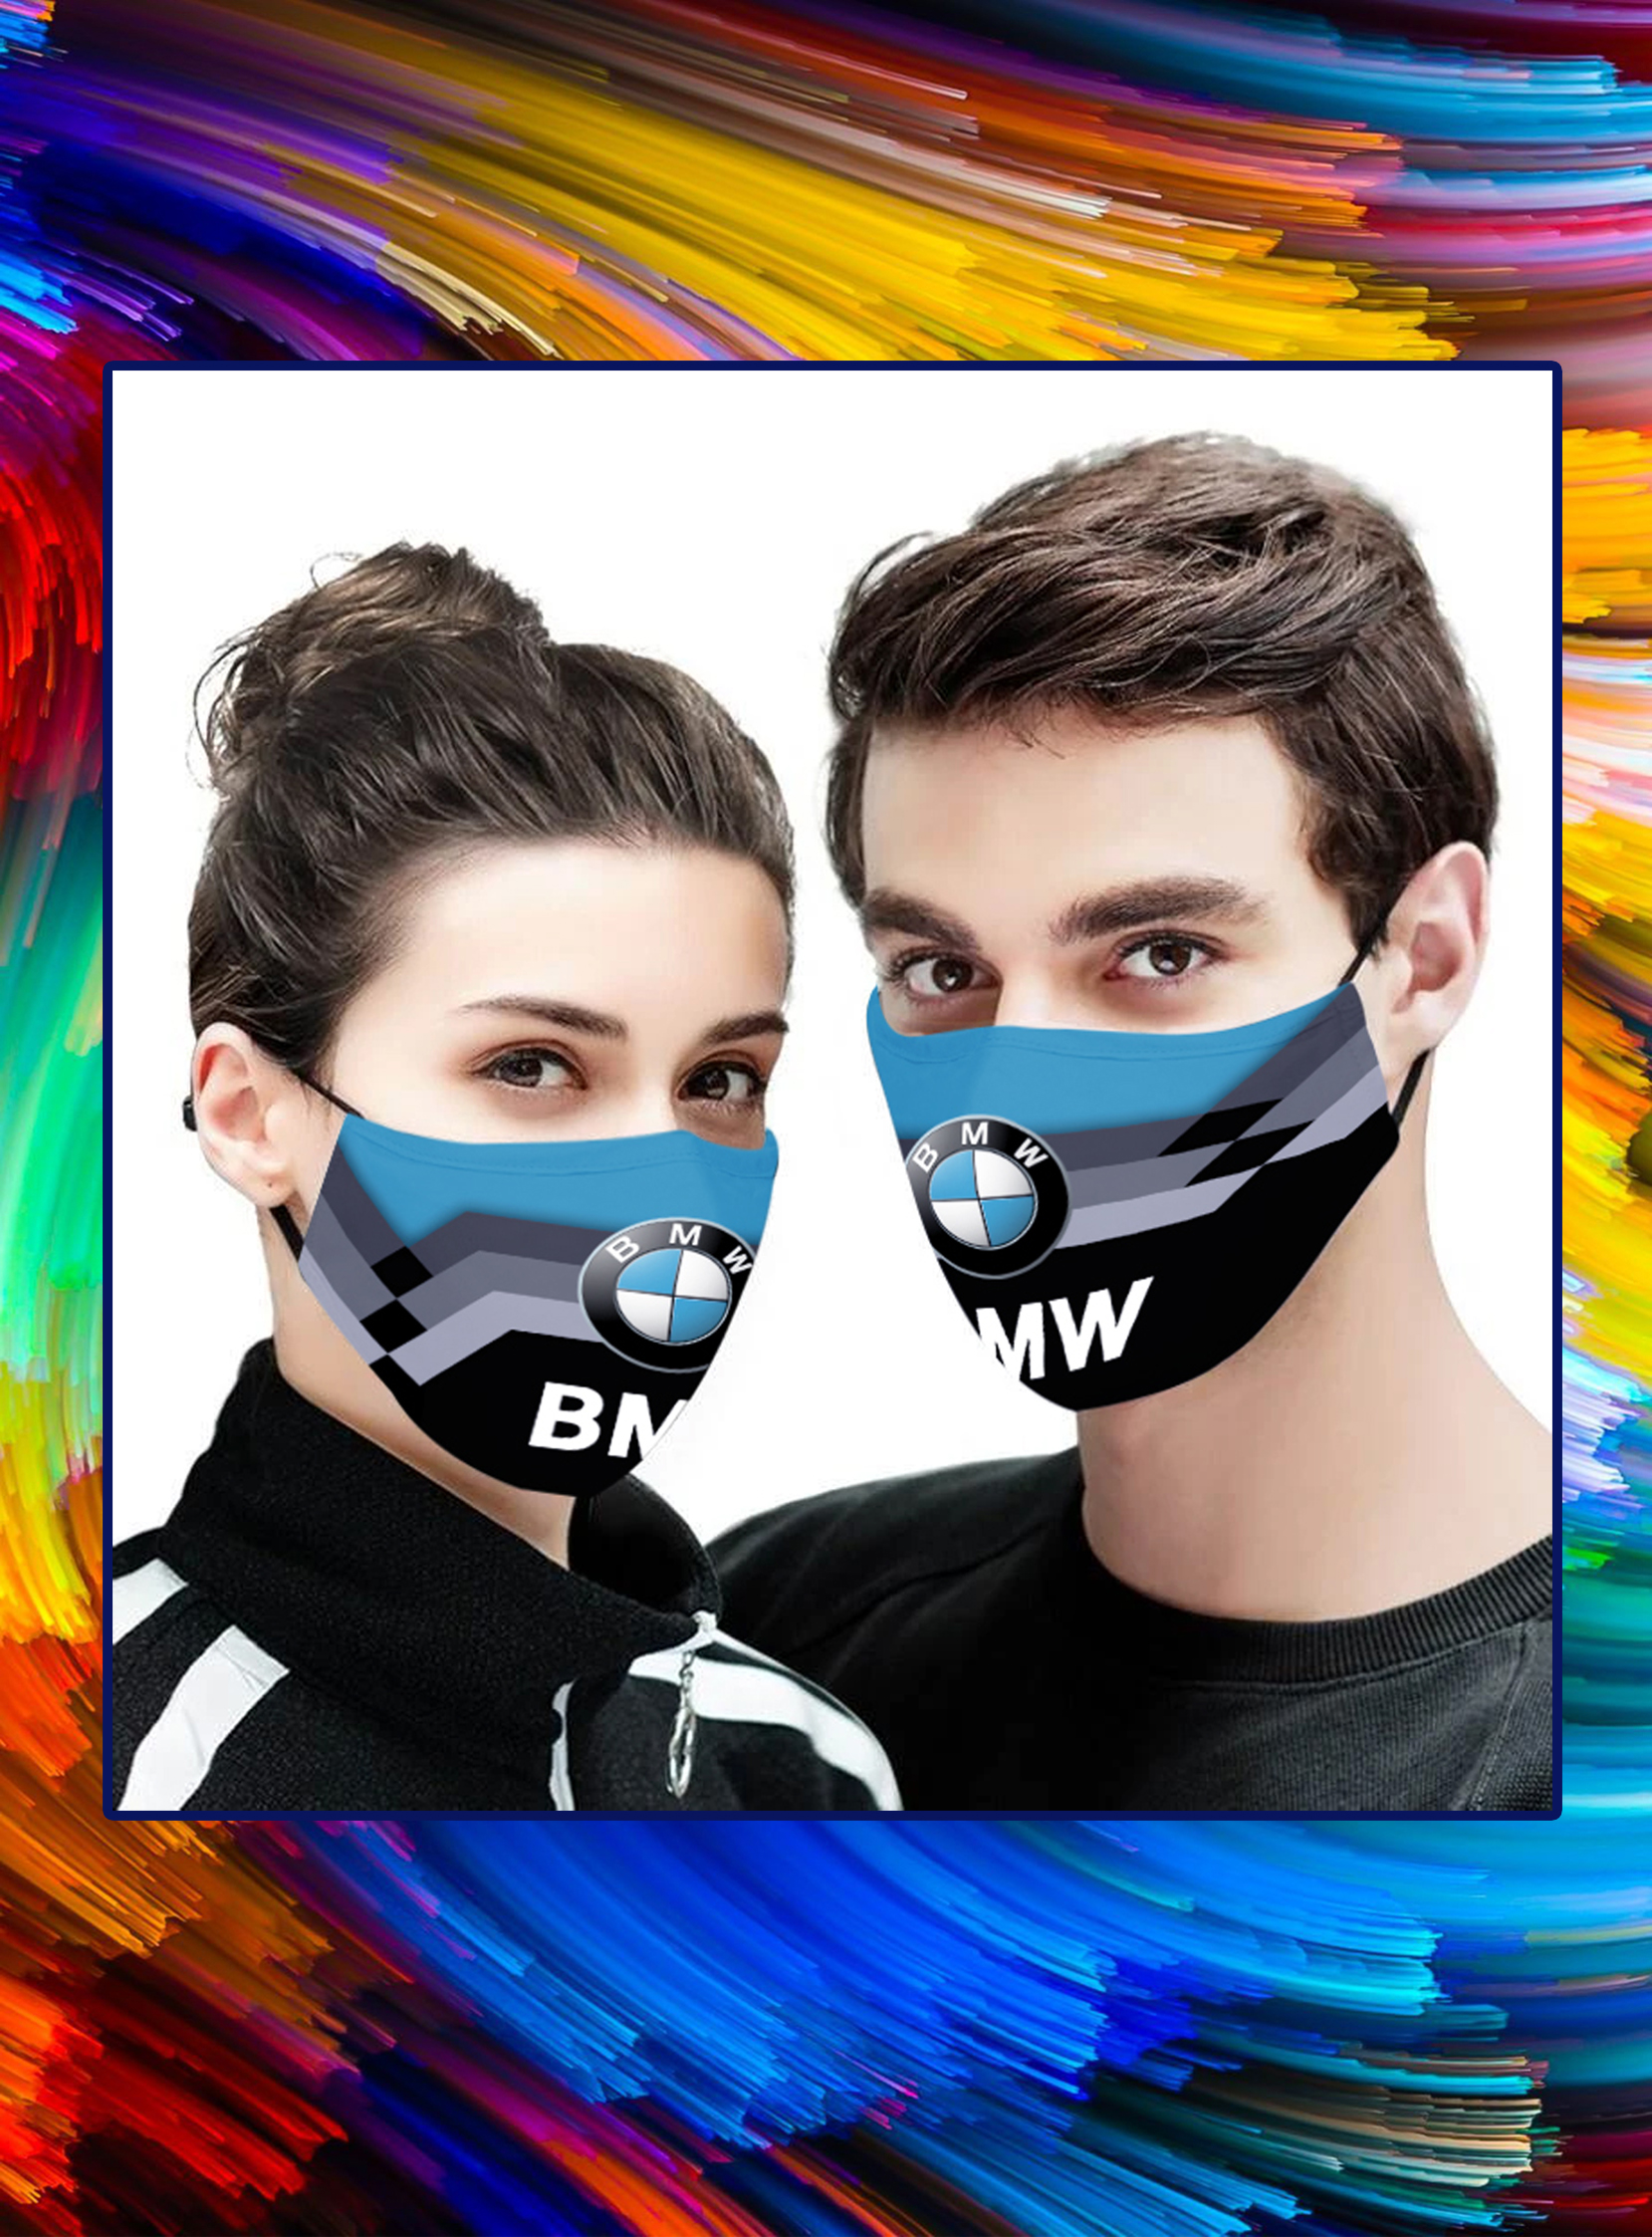 BMW face mask - pic 1